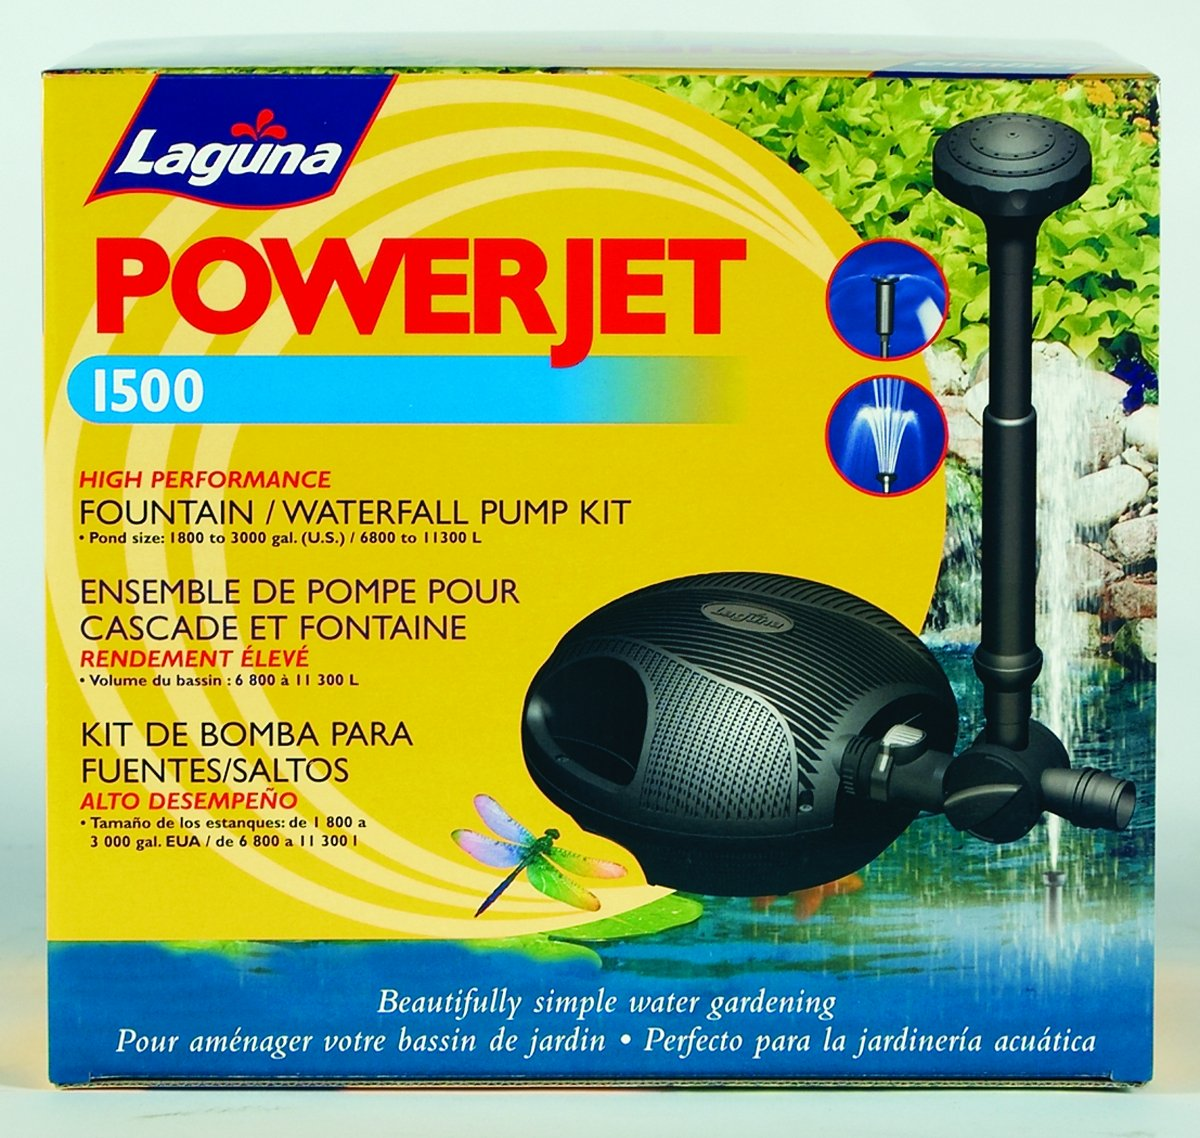 LAGUNA WATER GARDEN PT8208/PT332 POWERJET FOUNTAIN PUMP KIT 1500 GPH